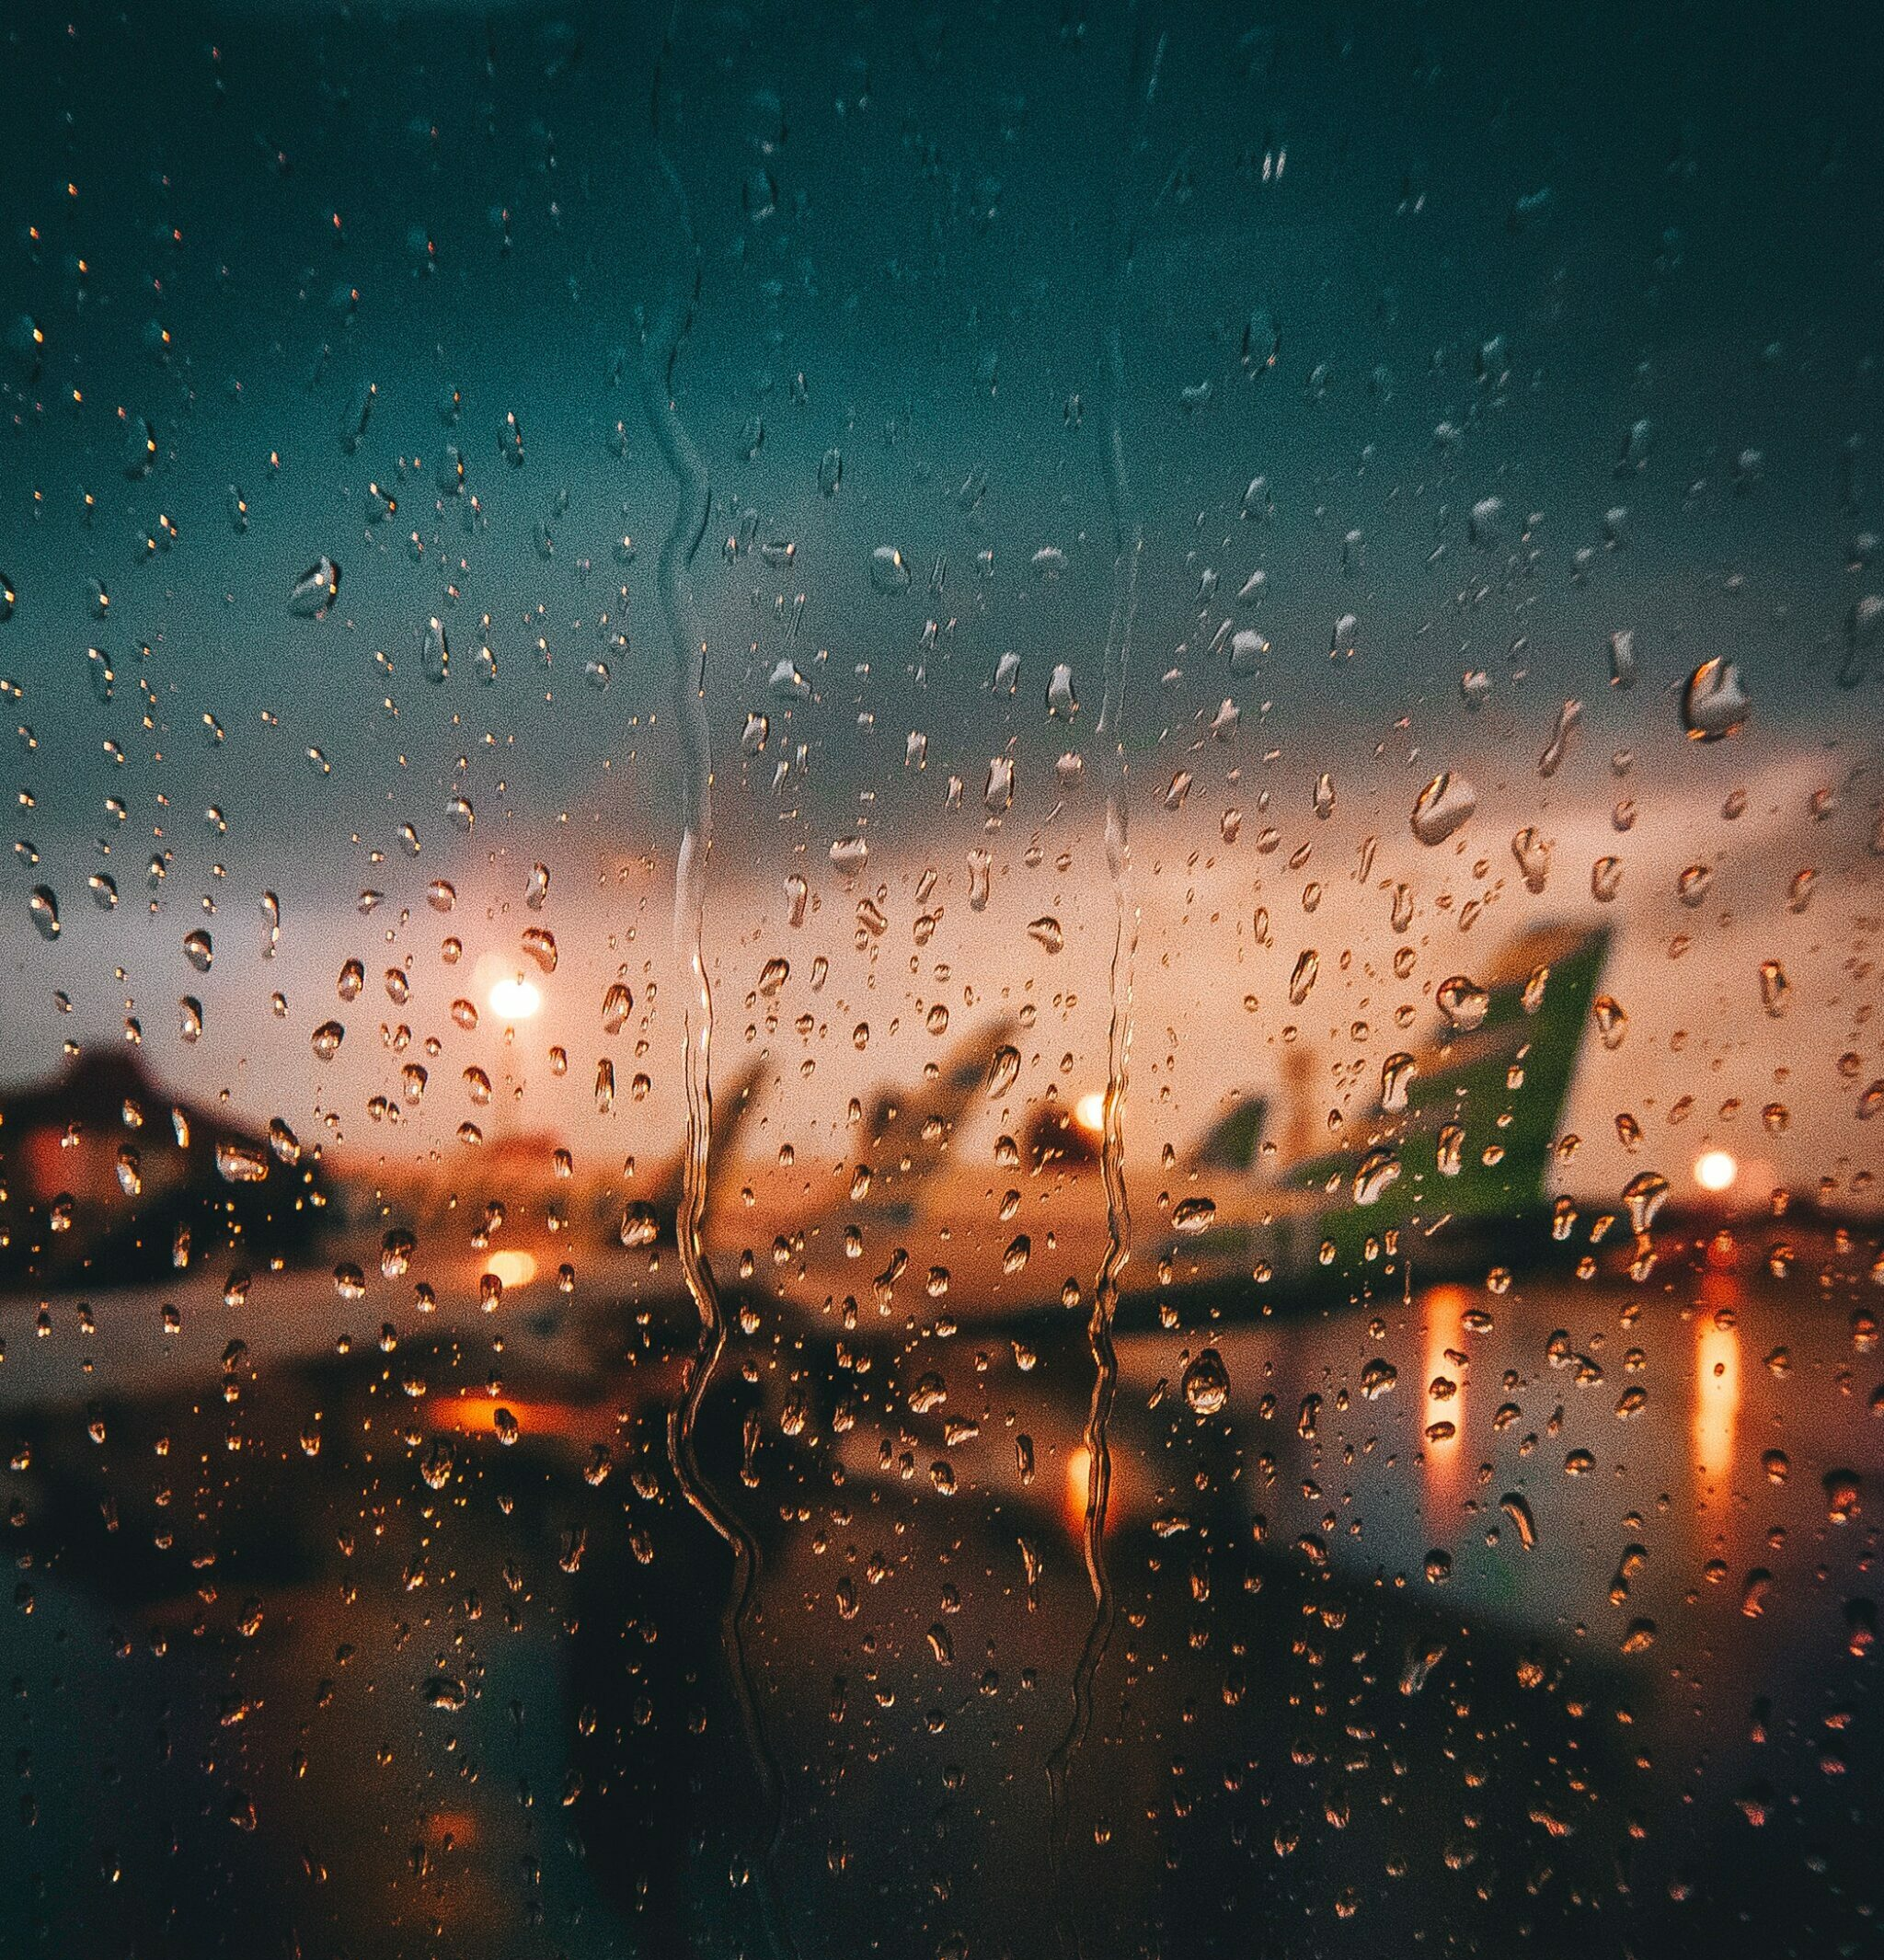 plane about to fly in rain